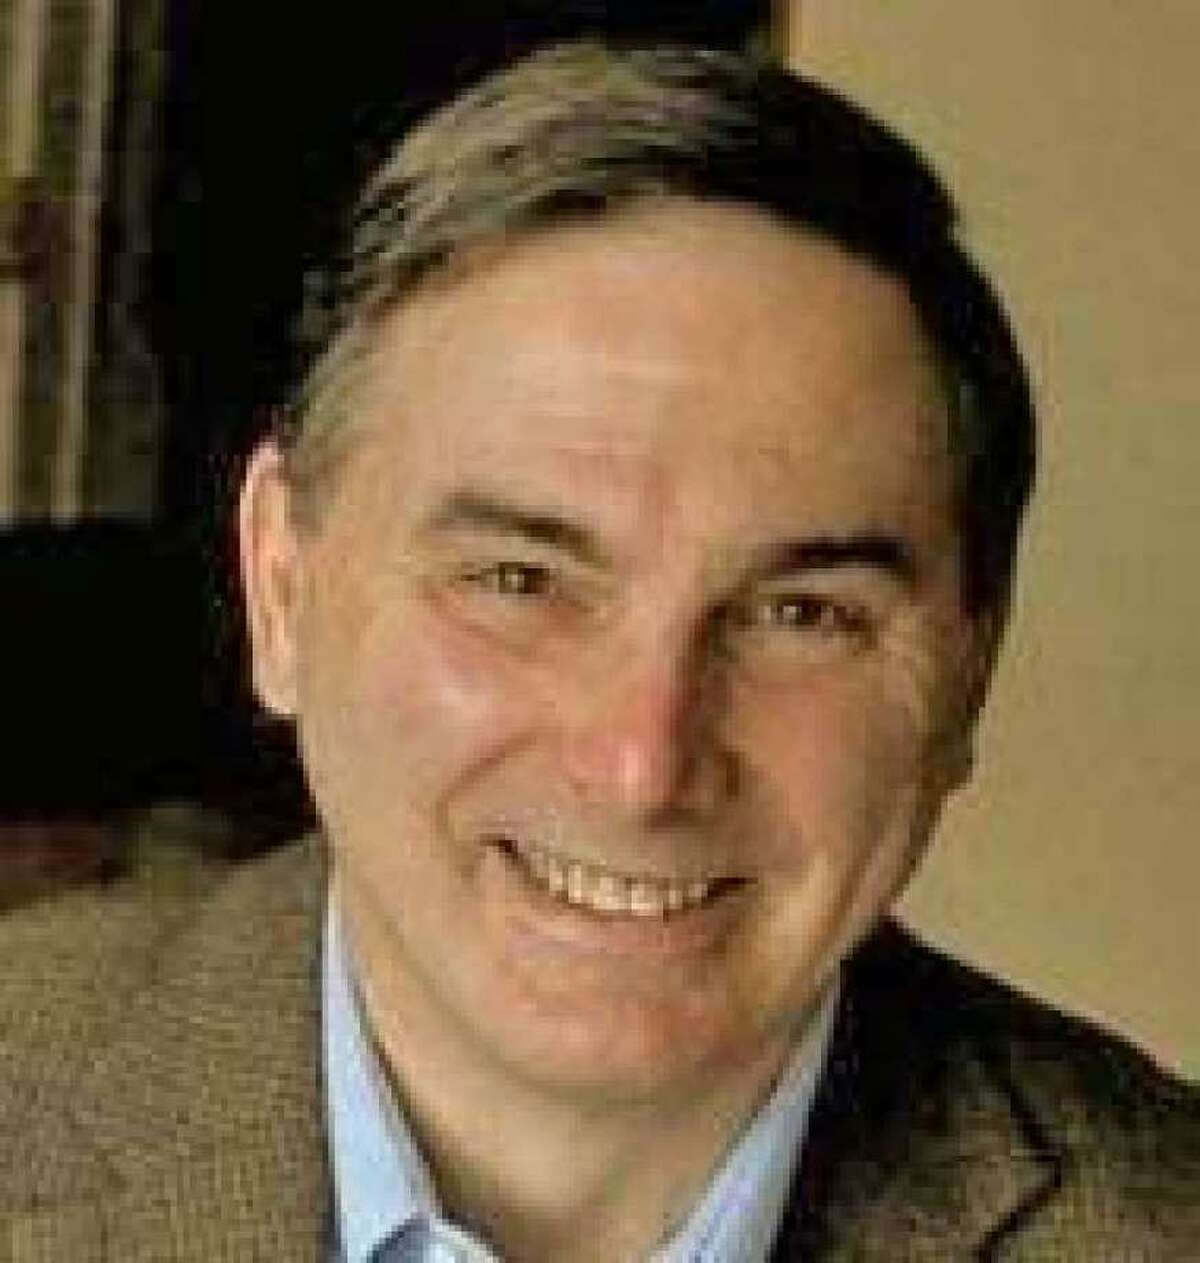 Historian and Author John Cilio is going to discuss Connecticut's role in aerial photography, critical technologies and engines used in aviation in the past in a virtual program with the Darien Library on Monday, Nov. 16, at 7 p.m.